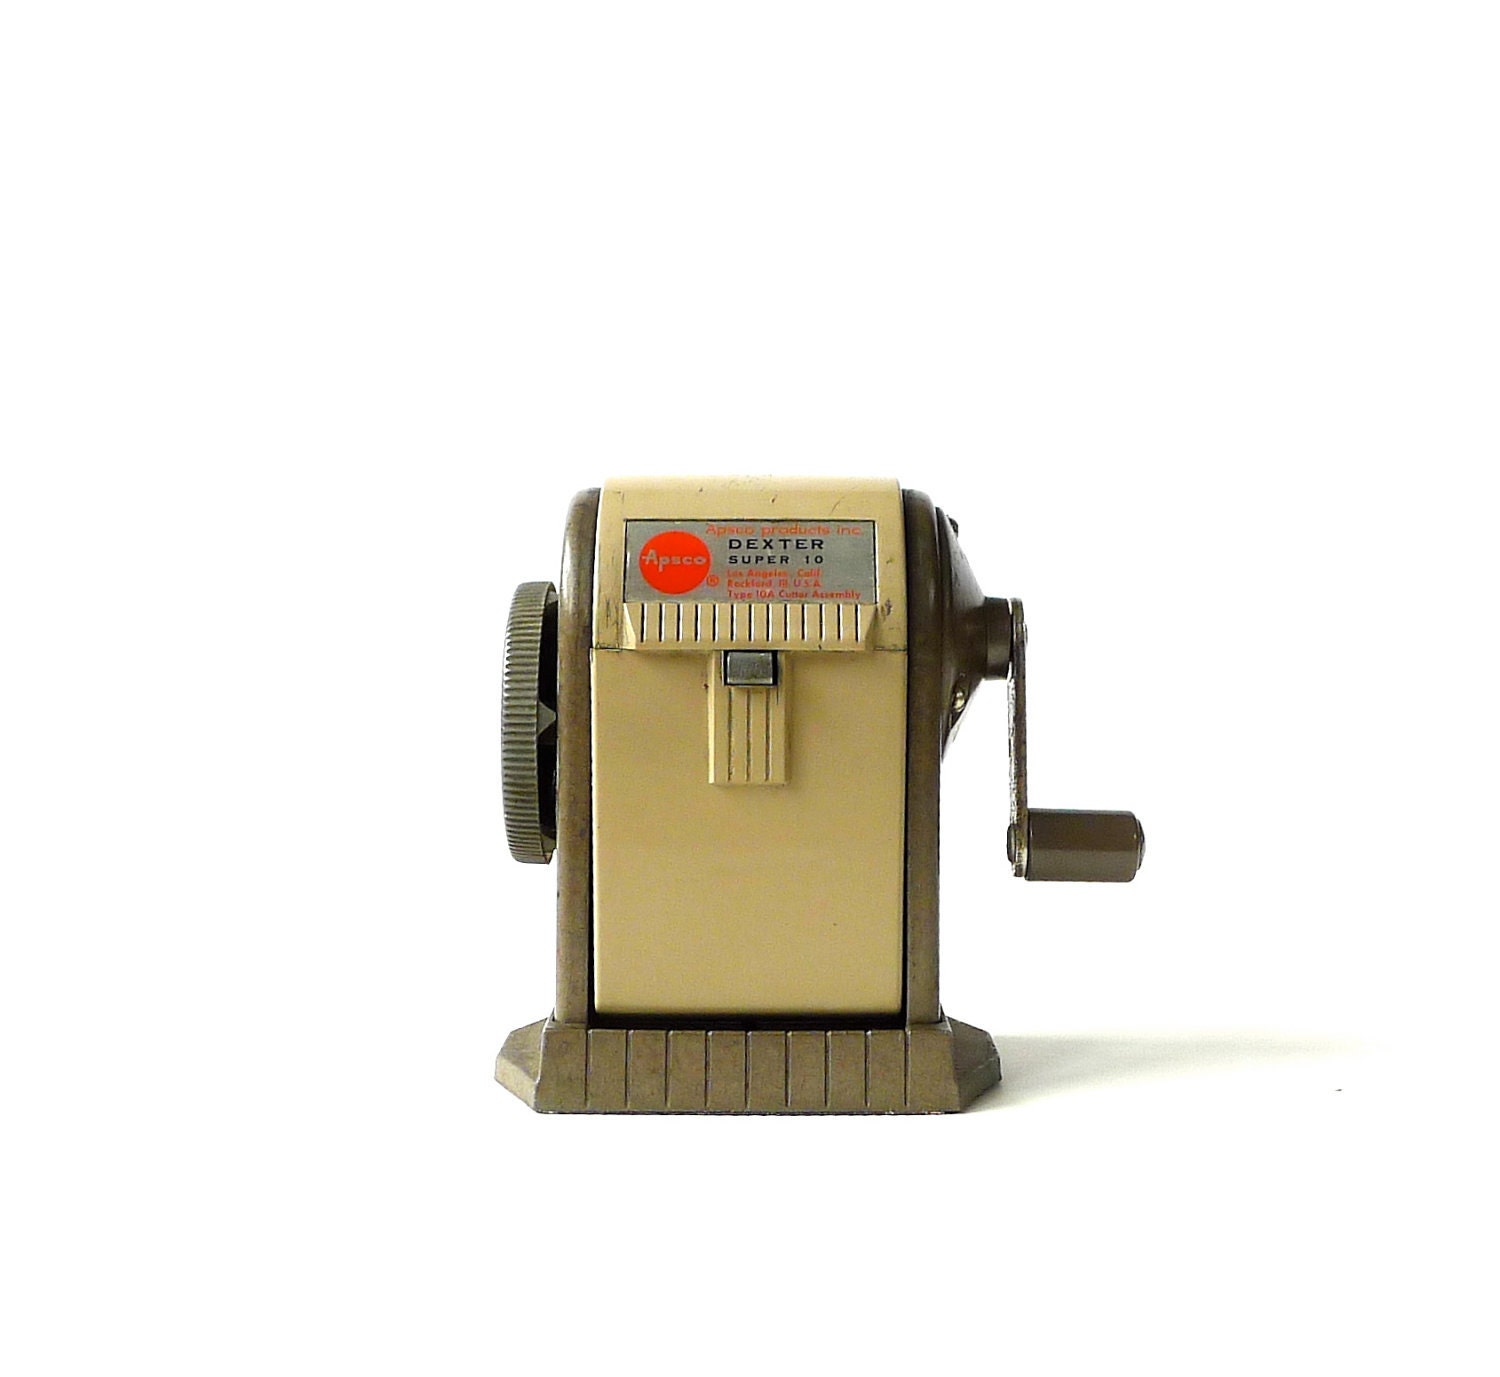 Vintage Apsco Dexter Super 10 Pencil Sharpener By Marybethhale